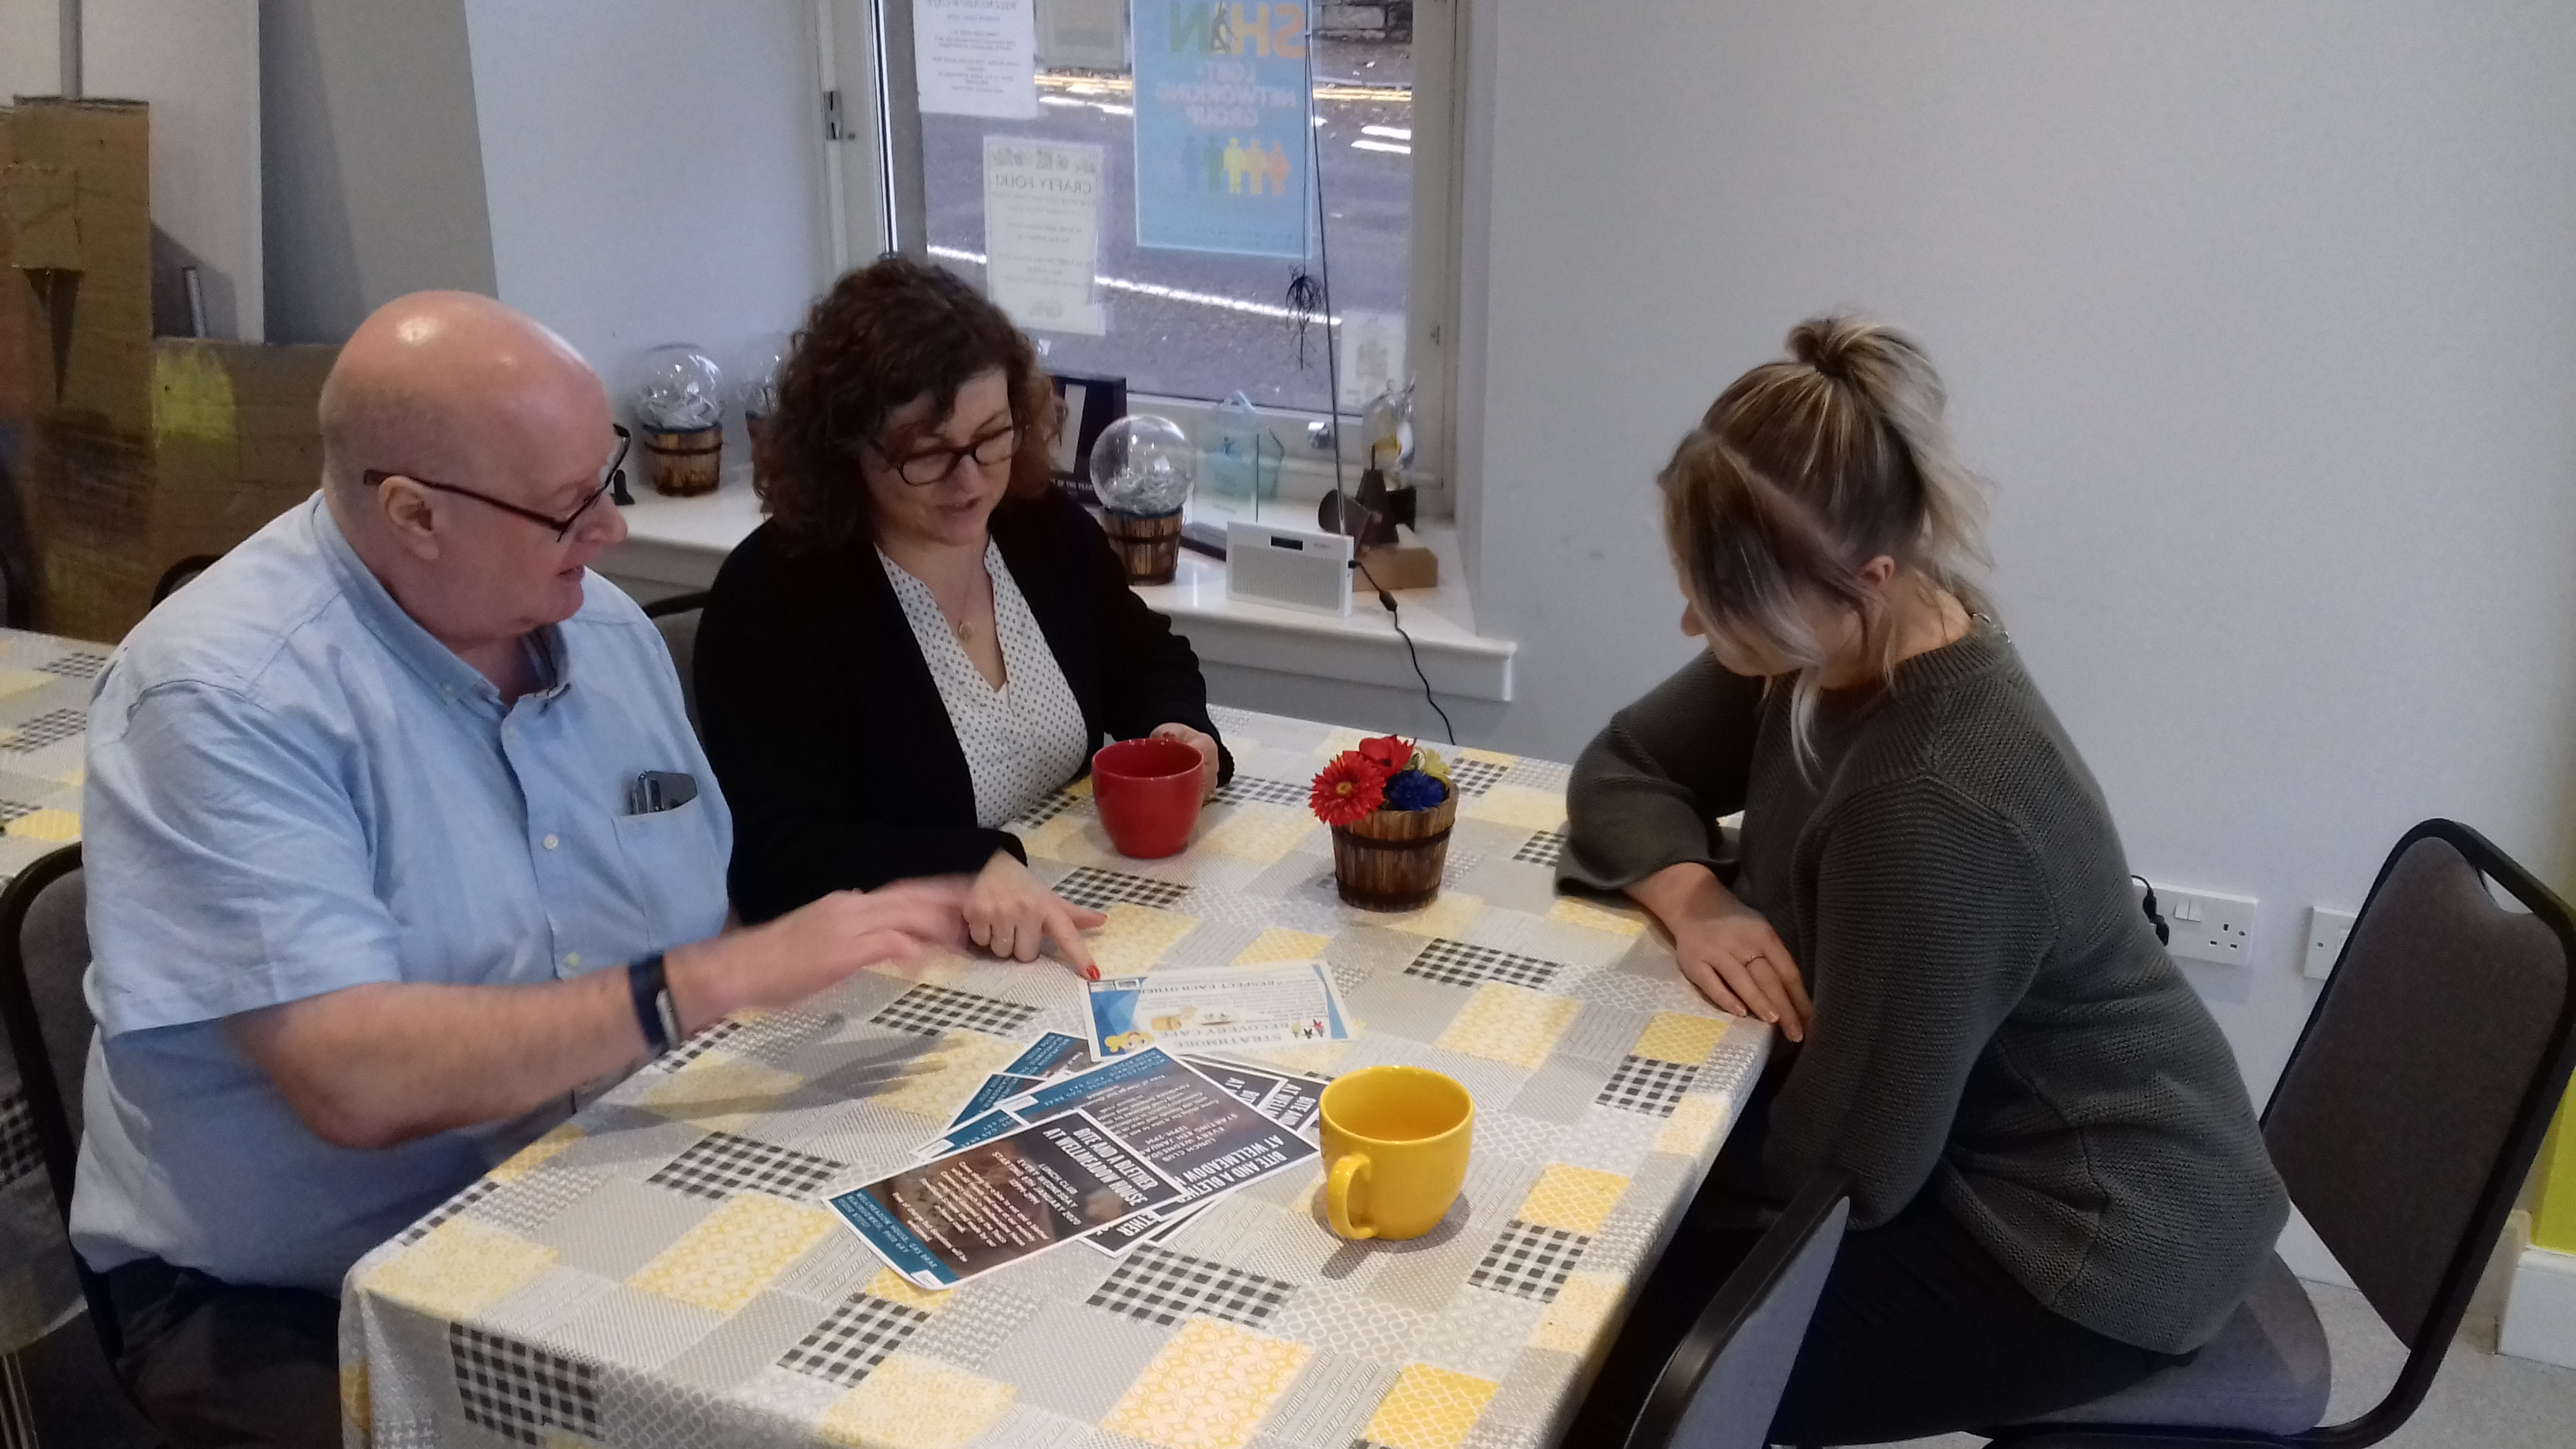 Liam McLaughlin from Perth & Kinross ADP, Audra Webster and SCYD development worker Ashleigh Mustard at the Strathmore Recovery Café